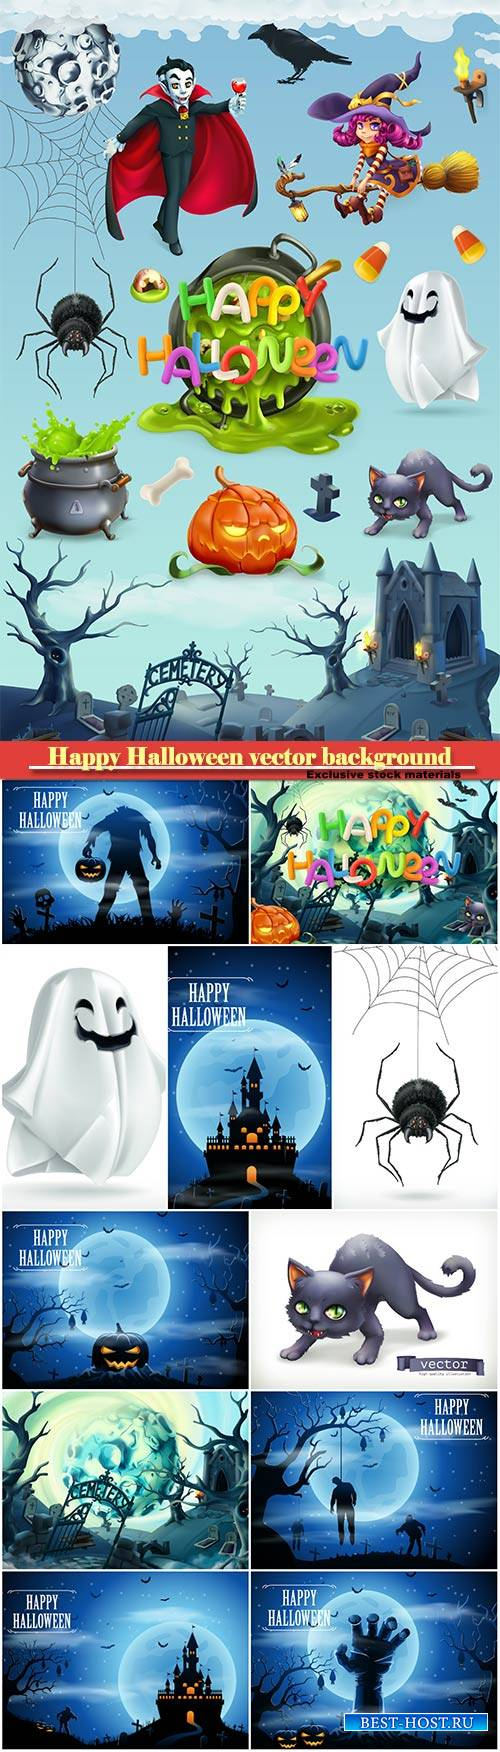 Happy Halloween vector background, pumpkin, spider, cat, witch, vampire and ...